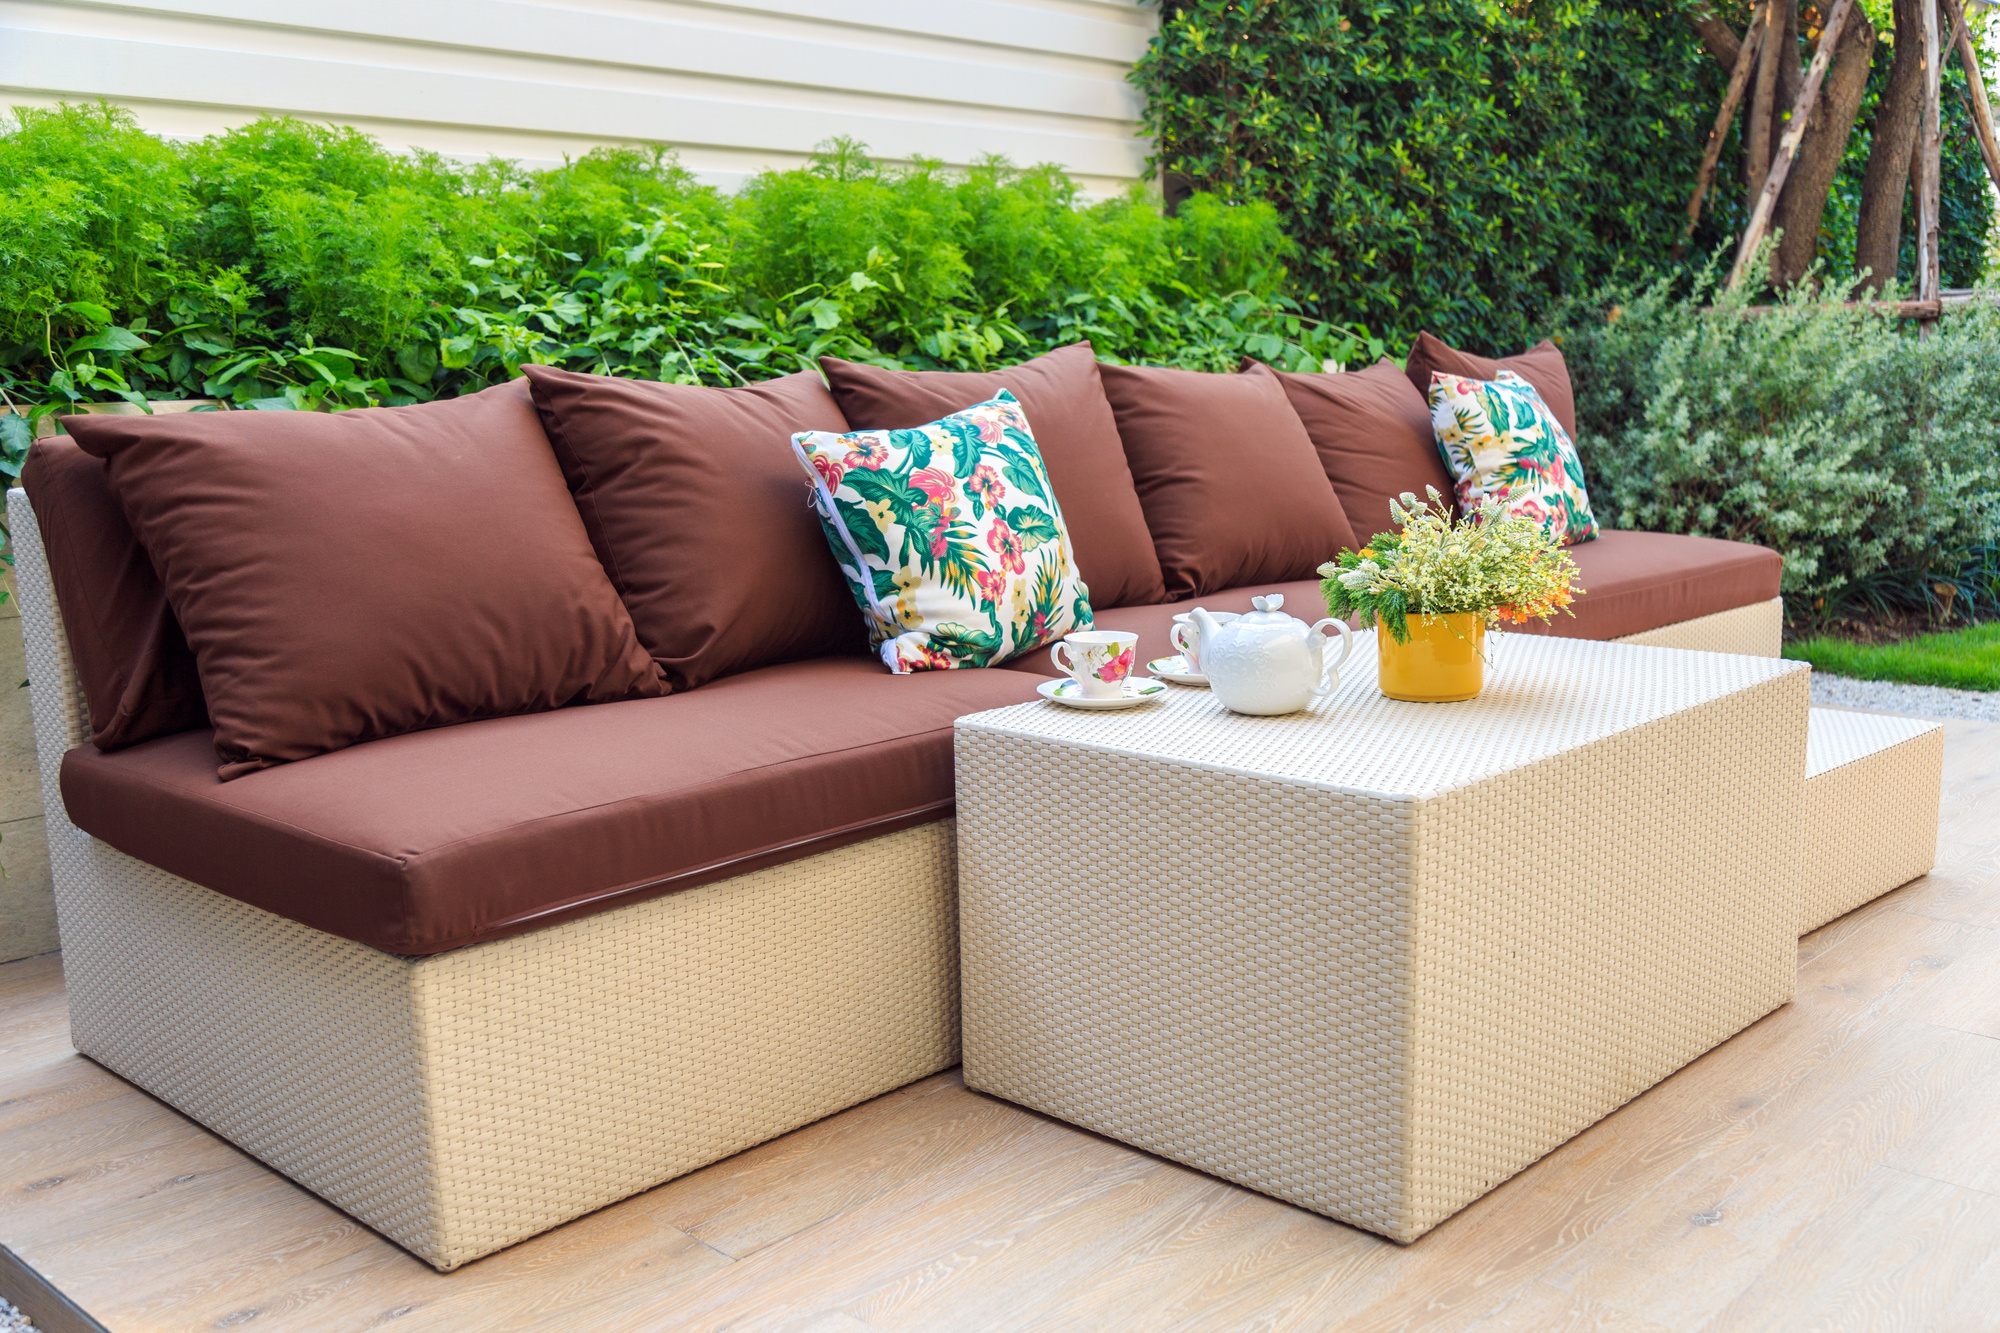 5 Easy Ways to Dress Up Your Outdoor Living Space This ... on Best Outdoor Living Spaces id=56561